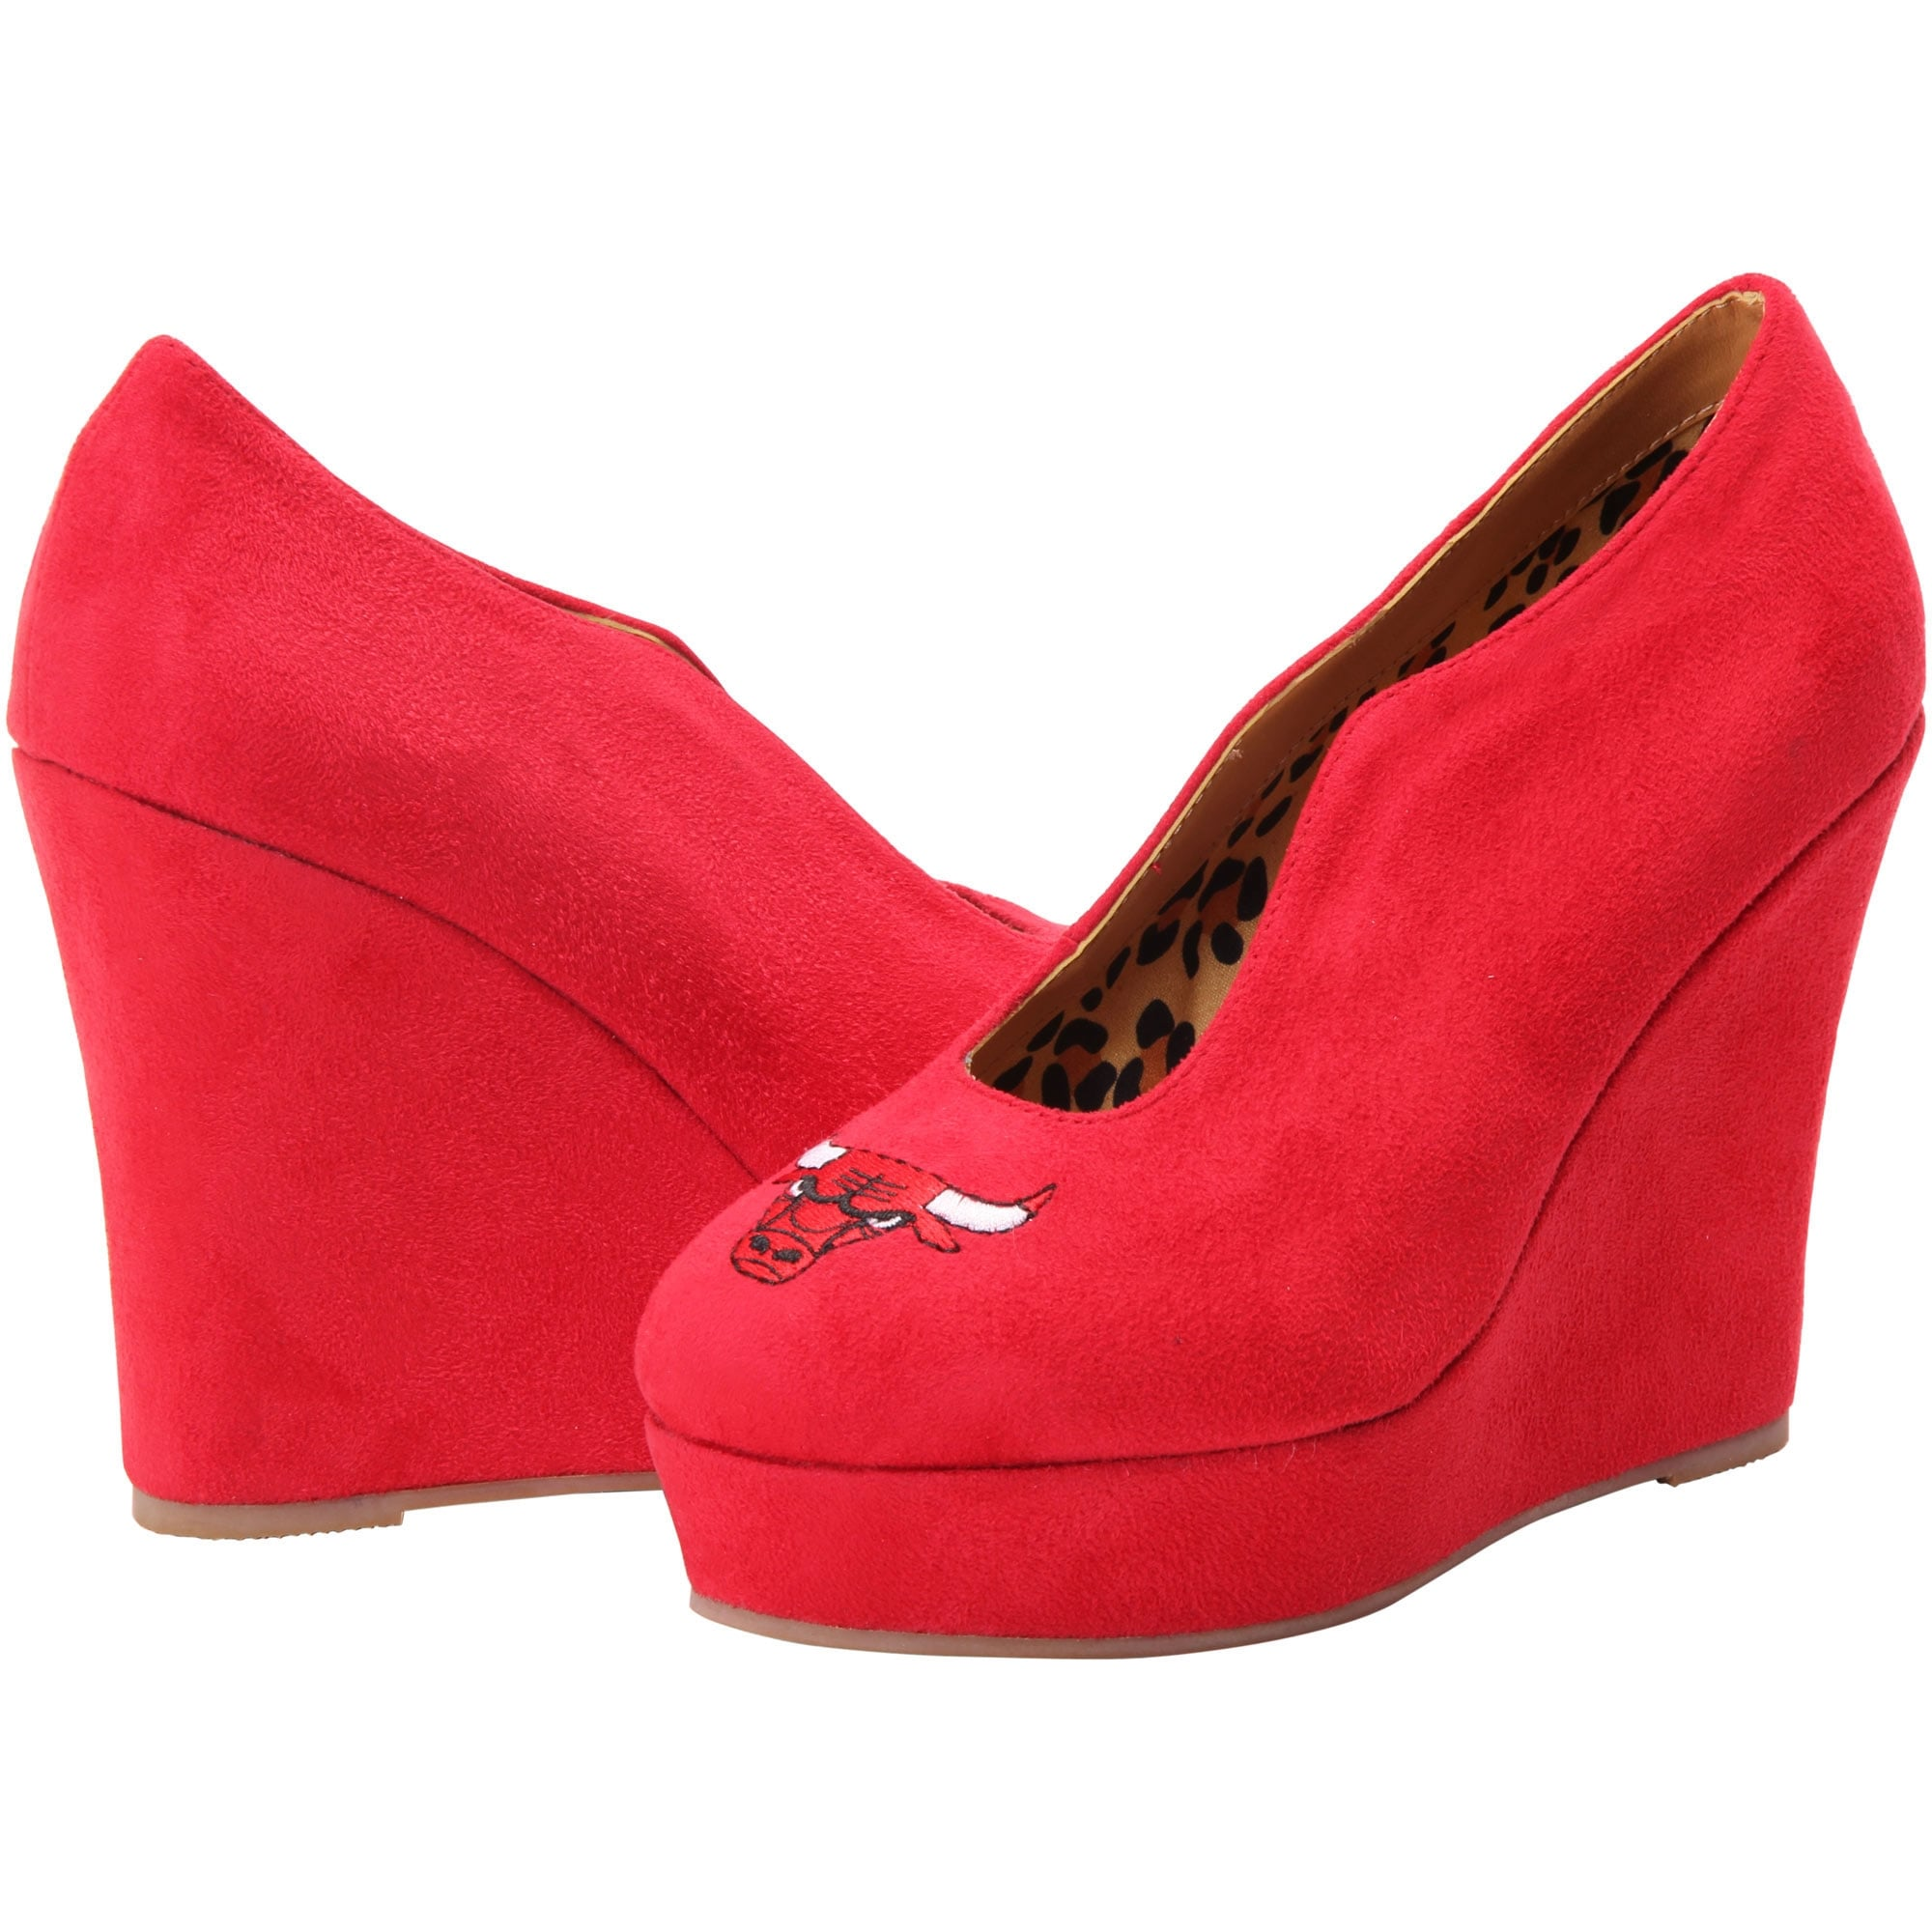 Chicago Bulls Cuce Shoes Women's Spirited Wedge Pumps - Red